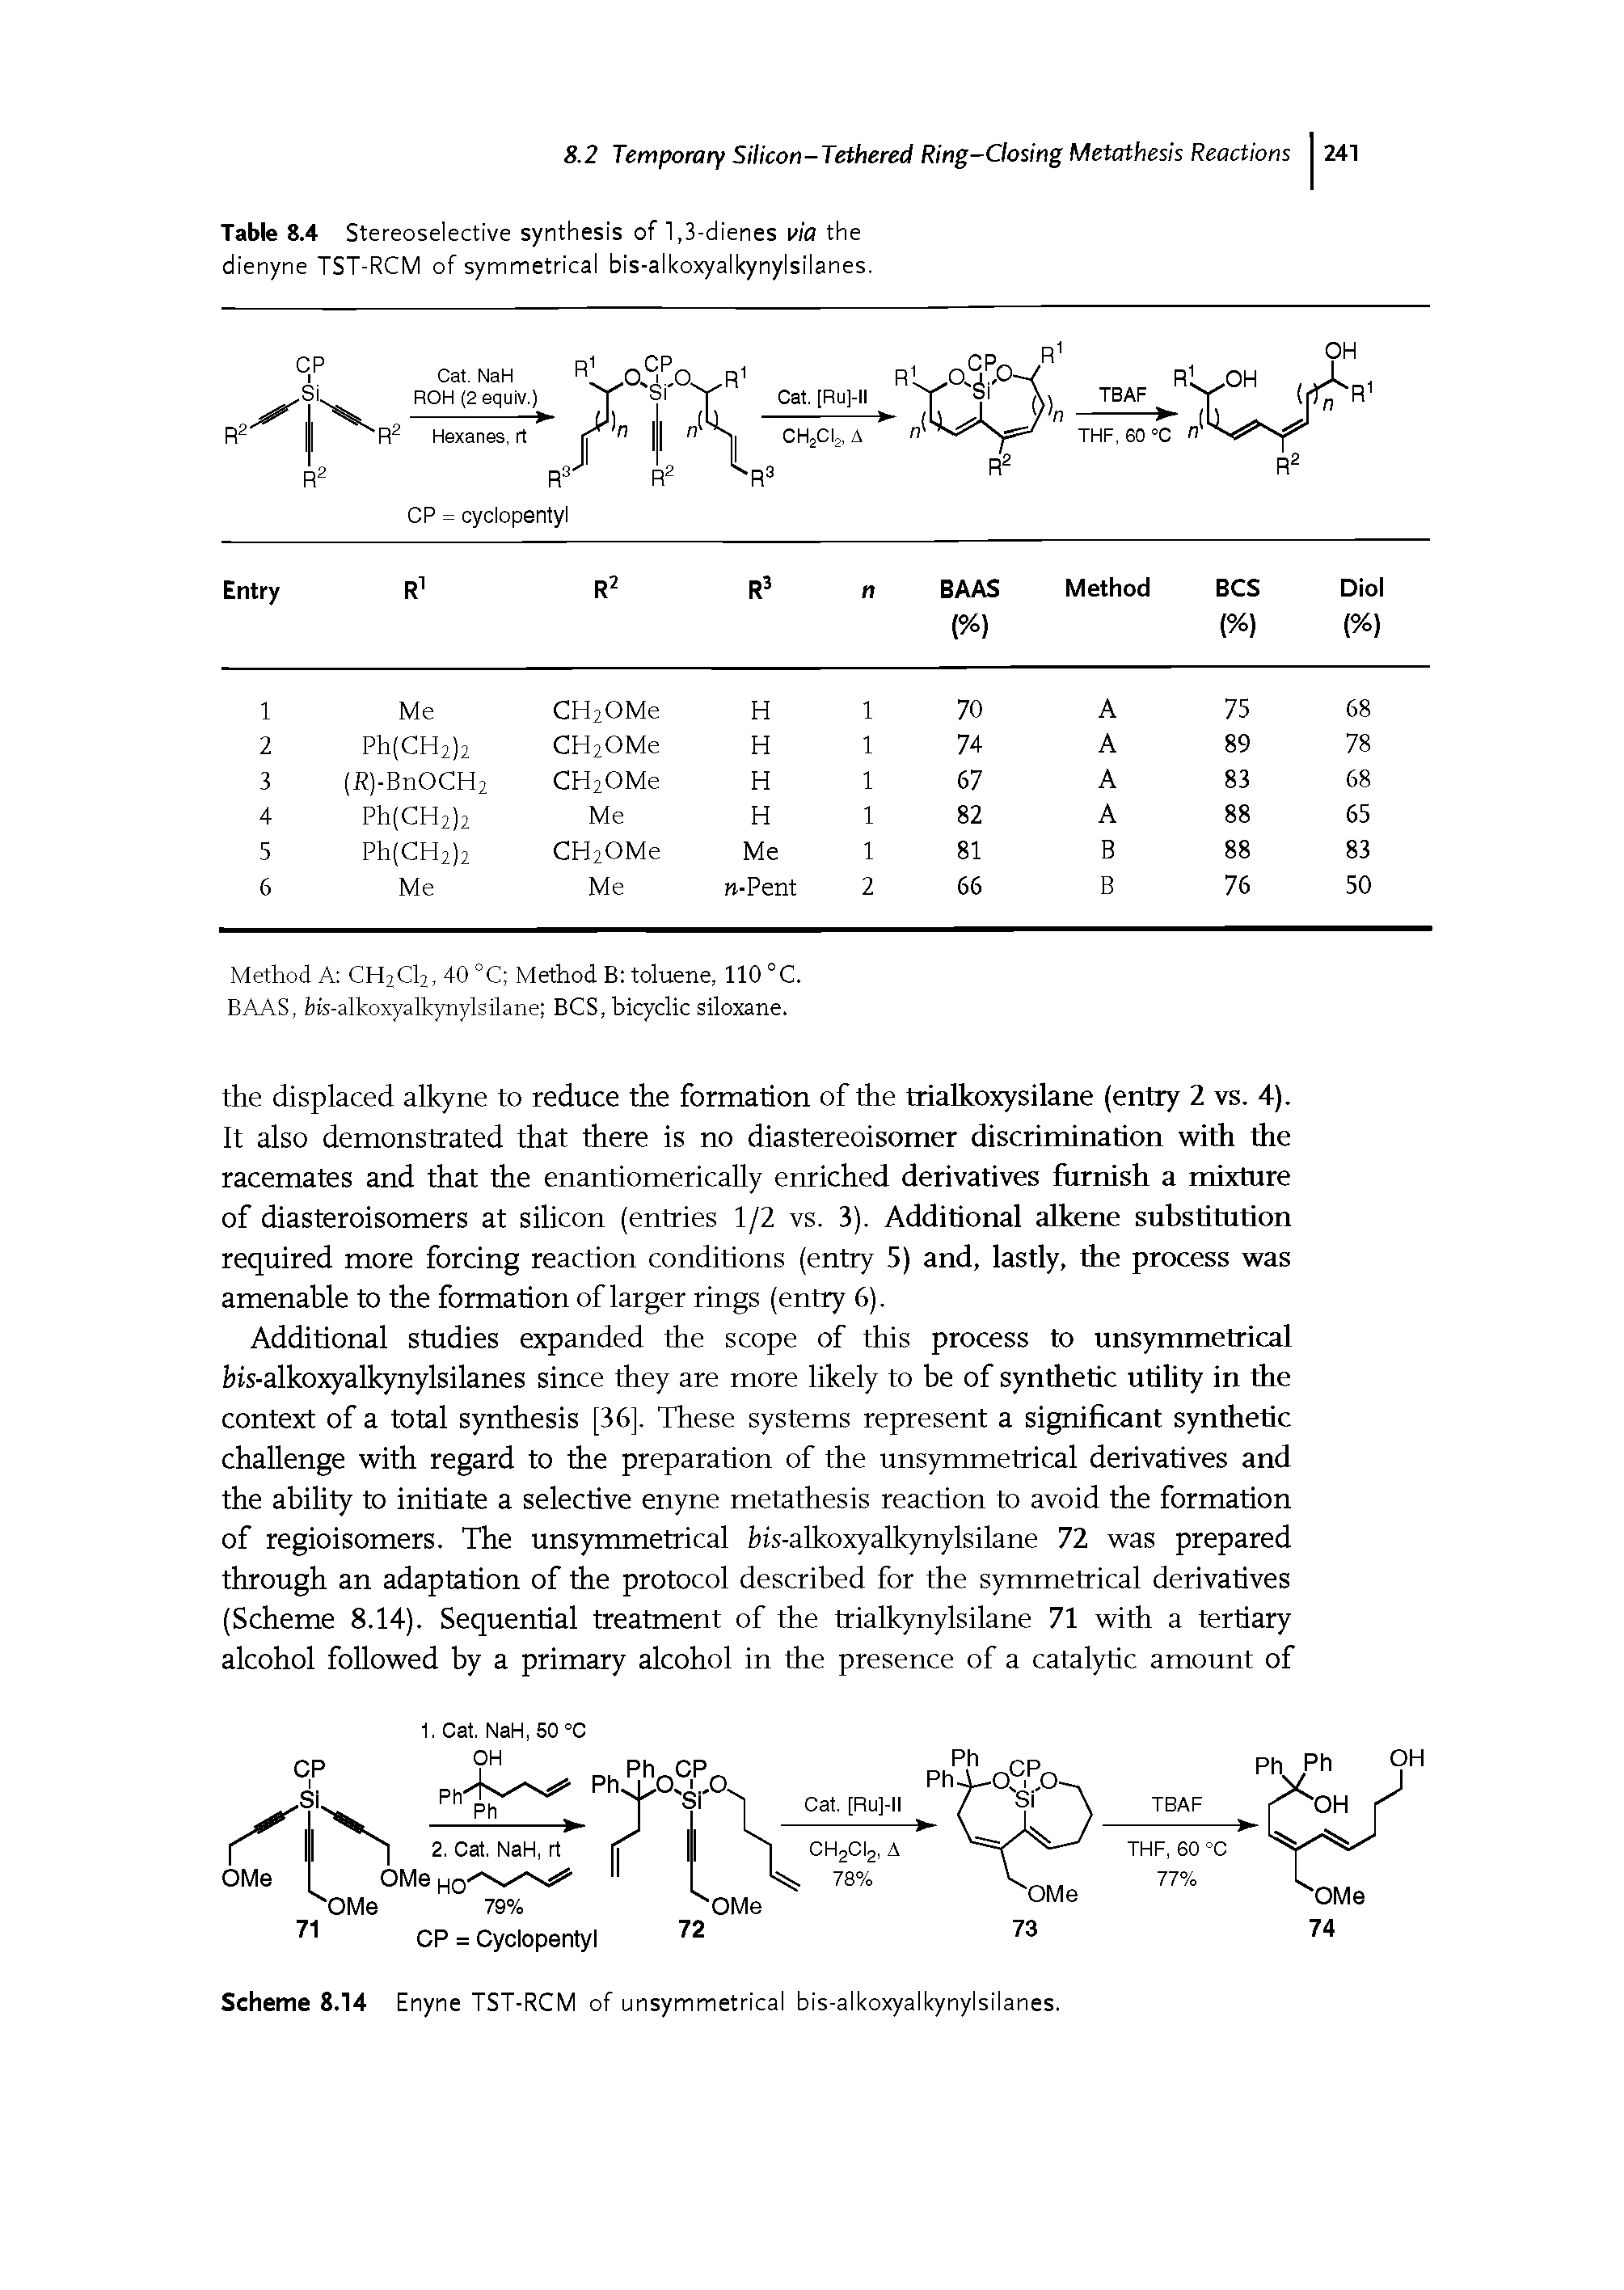 "Table 8.4 <a href=""/info/stereoselective_synthesis"">Stereoselective synthesis</a> of 1,3-dienes via the dienyne TST-RCM of symmetrical bis-alkoxyalkynylsilanes."